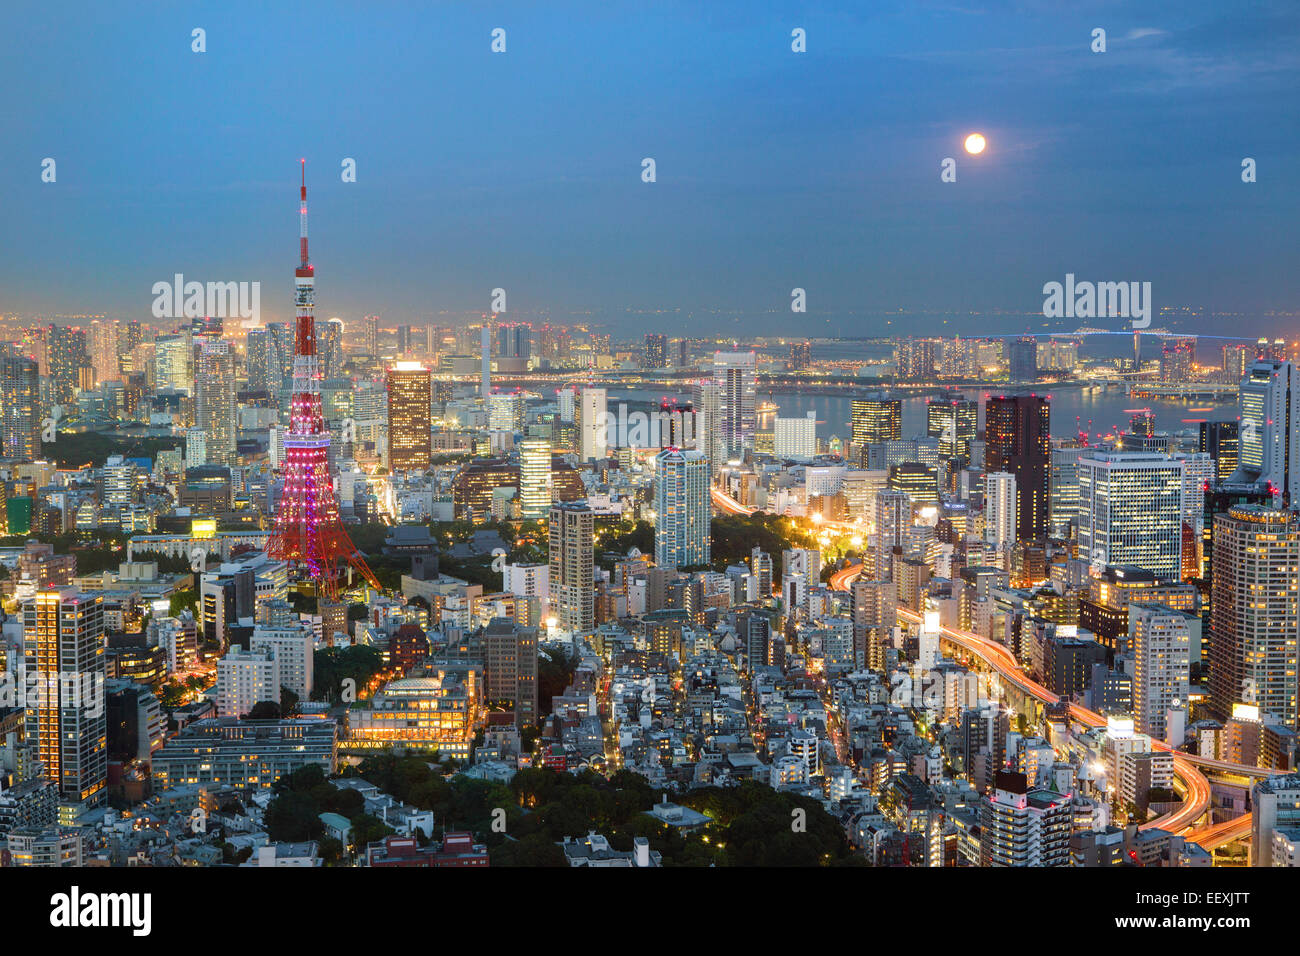 Tokyo by night - Stock Image